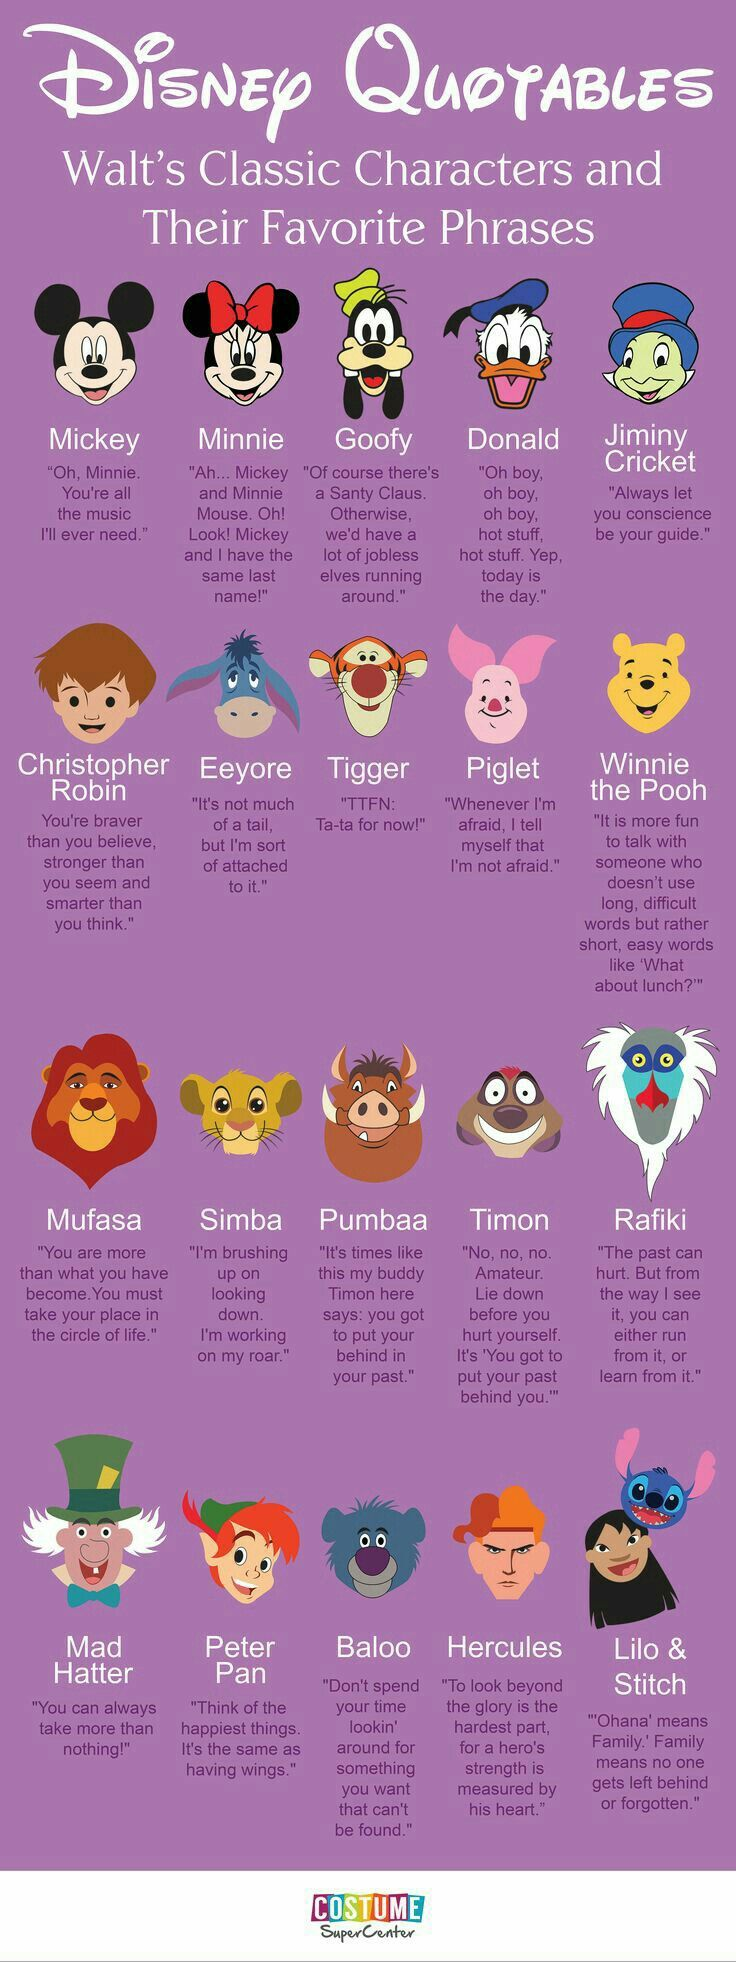 Pin By Ance Grivane On Quotes Disney Quotes Funny Disney Funny Disney Movie Funny